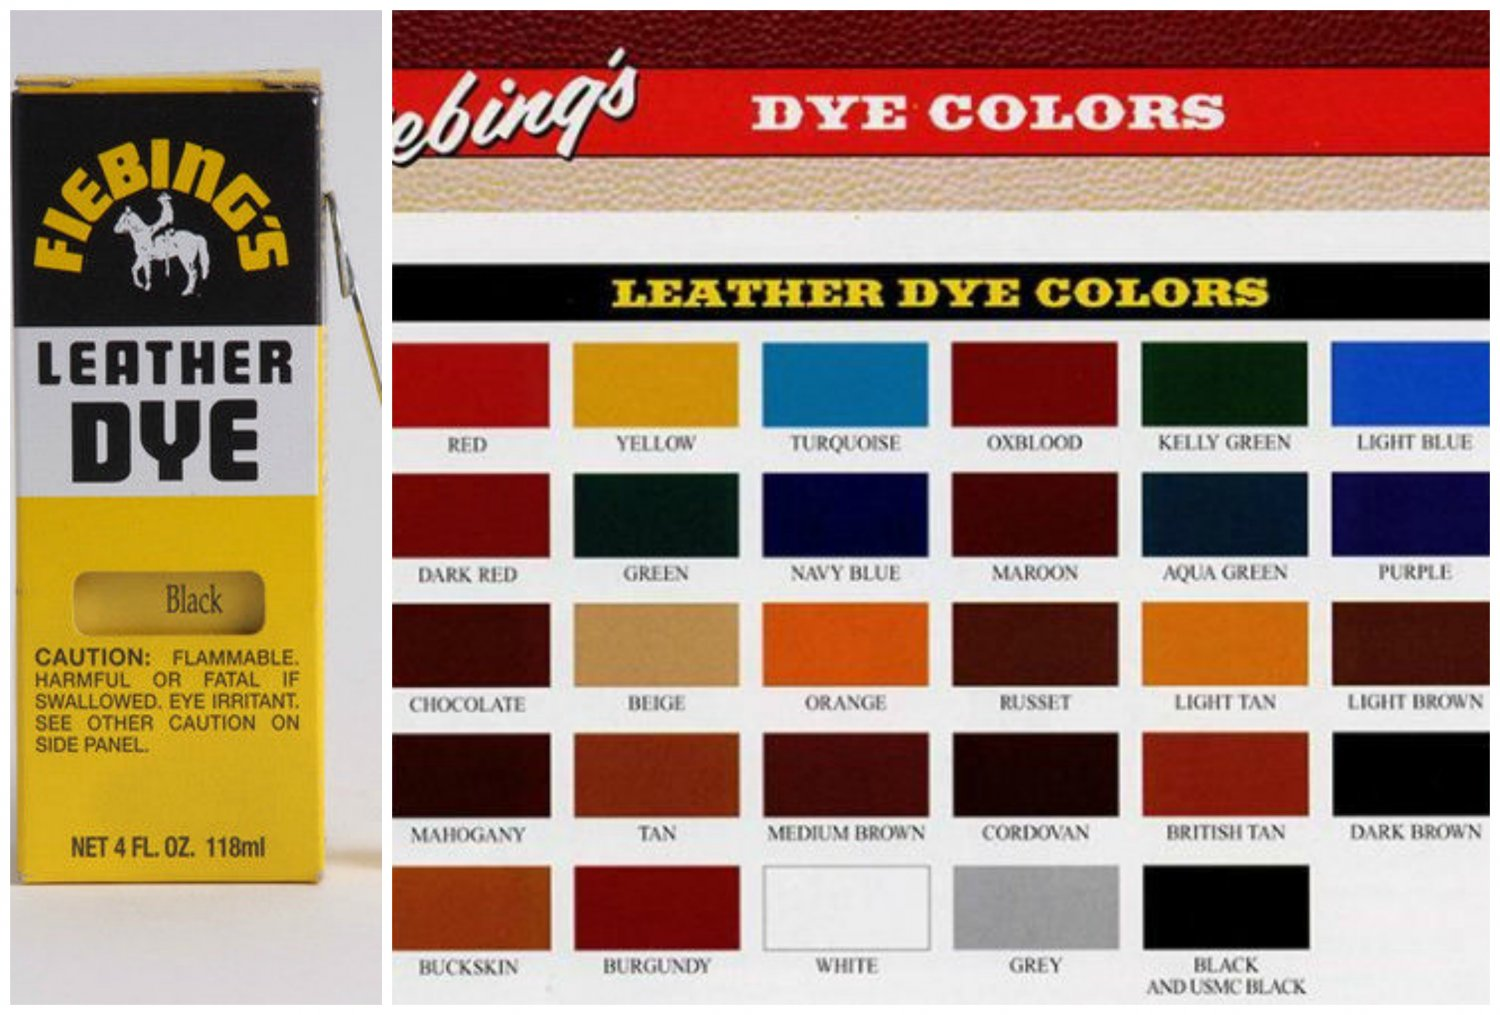 Fiebings Leather Dye 4 oz. with Applicator Shoes Boots Bag Beige Color